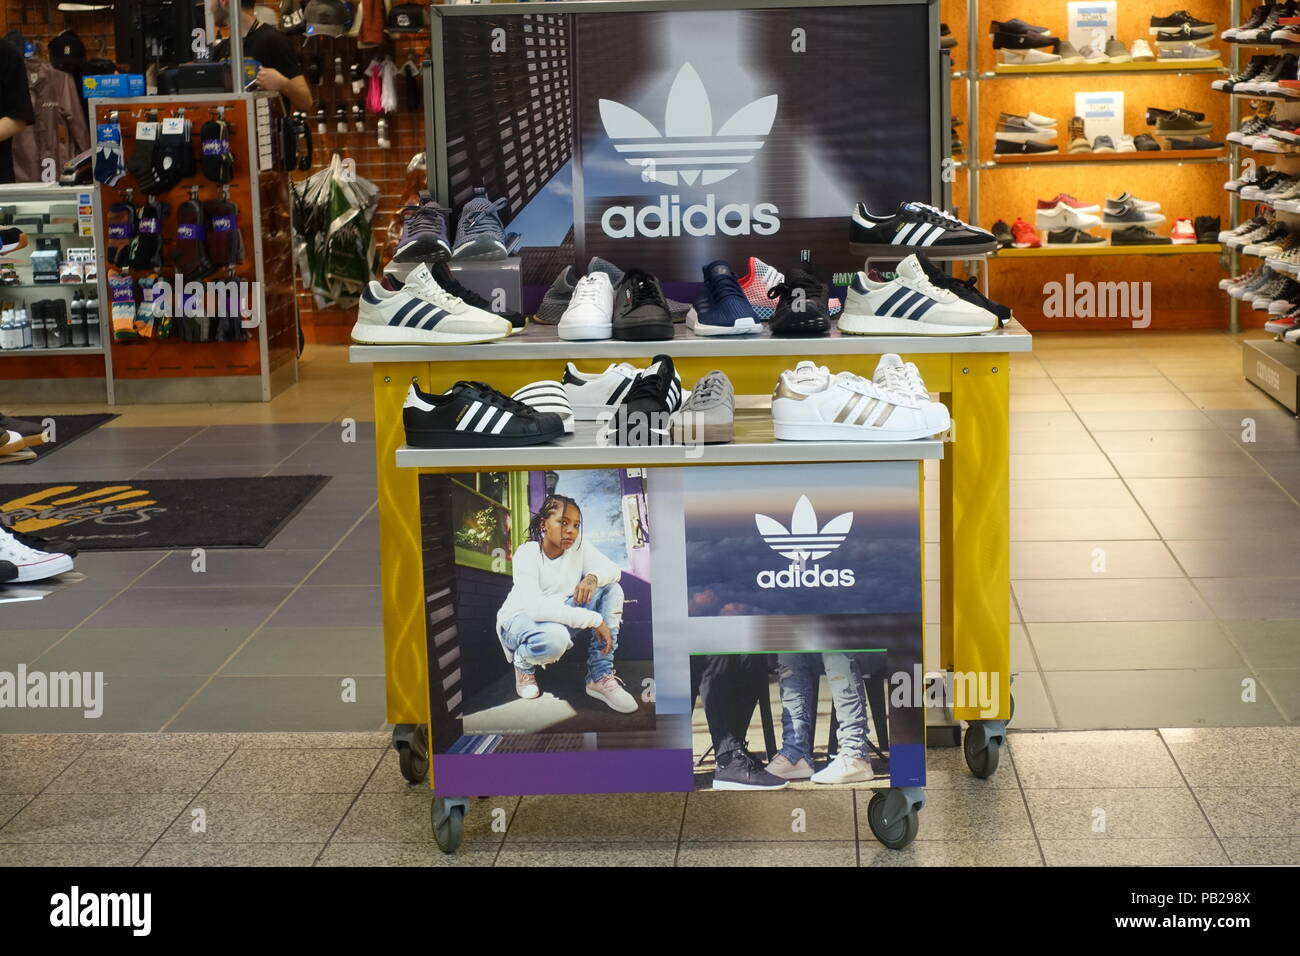 Adidas Shoes Display Immagini   Adidas Shoes Display Fotos Stock - Alamy a892a9c0fb3